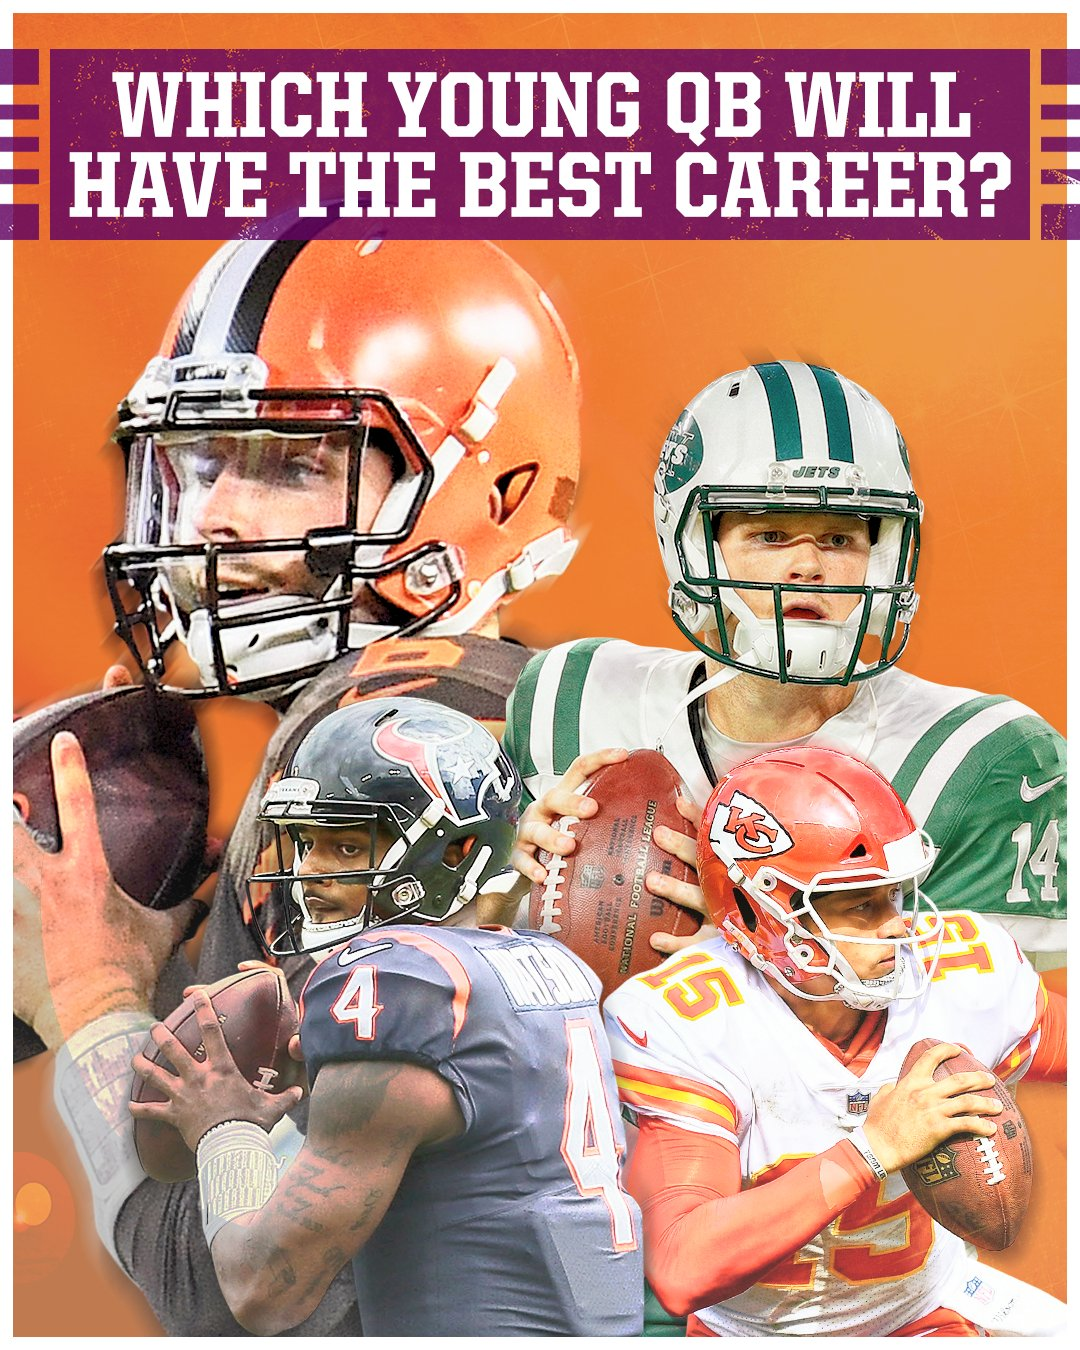 Mayfield. Darnold. Watson. Mahomes.  Which QB will end up having the best career? https://t.co/qlfnTSP0Y2